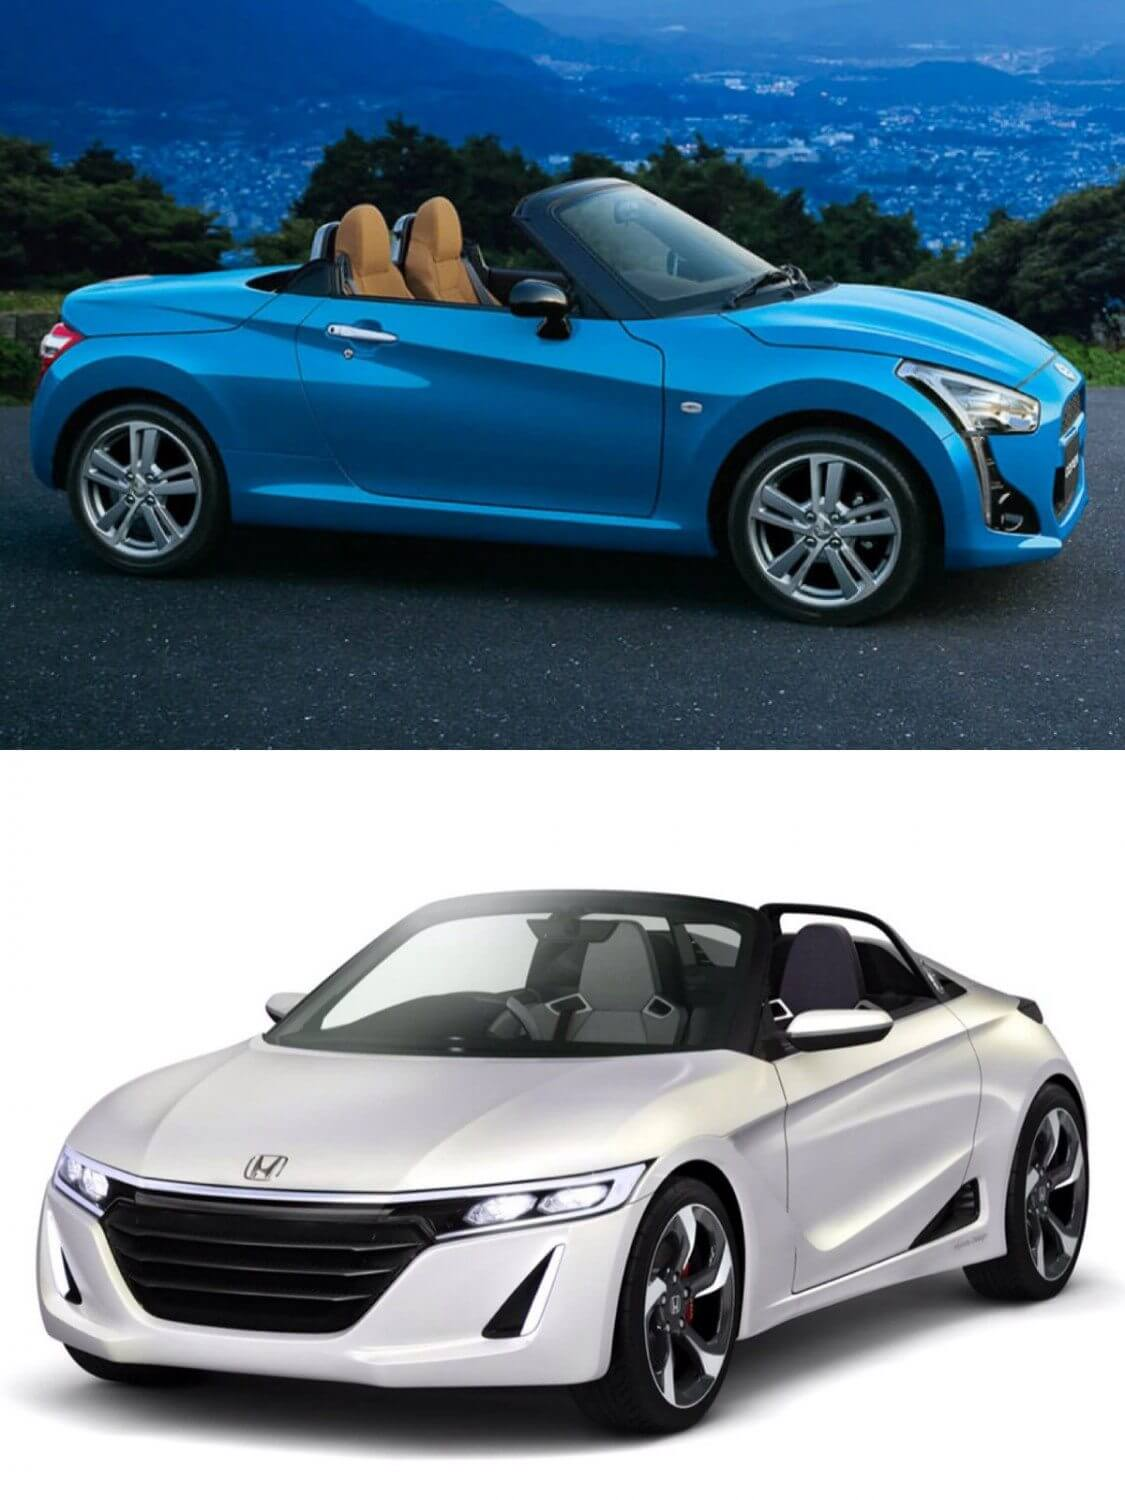 Exceptional Japanese Sports Cars 12